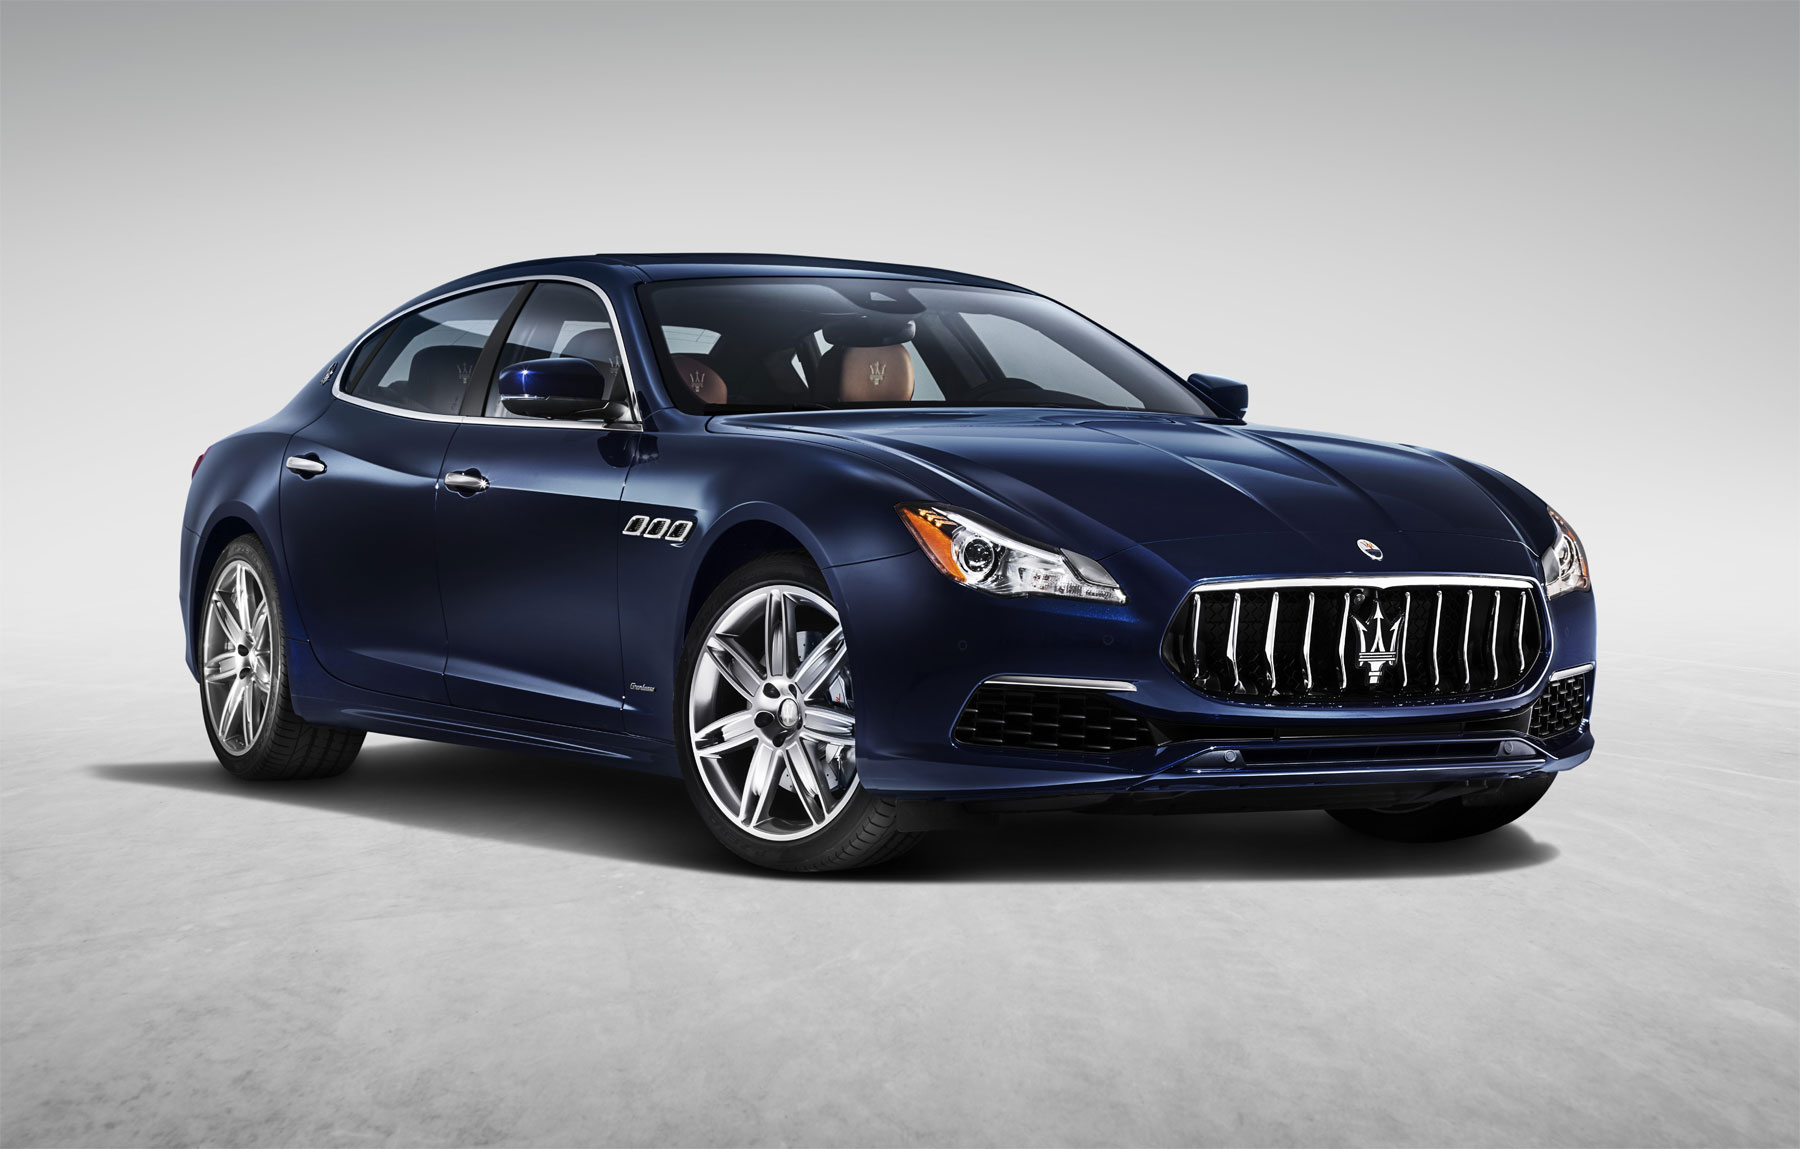 New Restyled Maserati Quattroporte With Extra Refinement And High-Tech Features